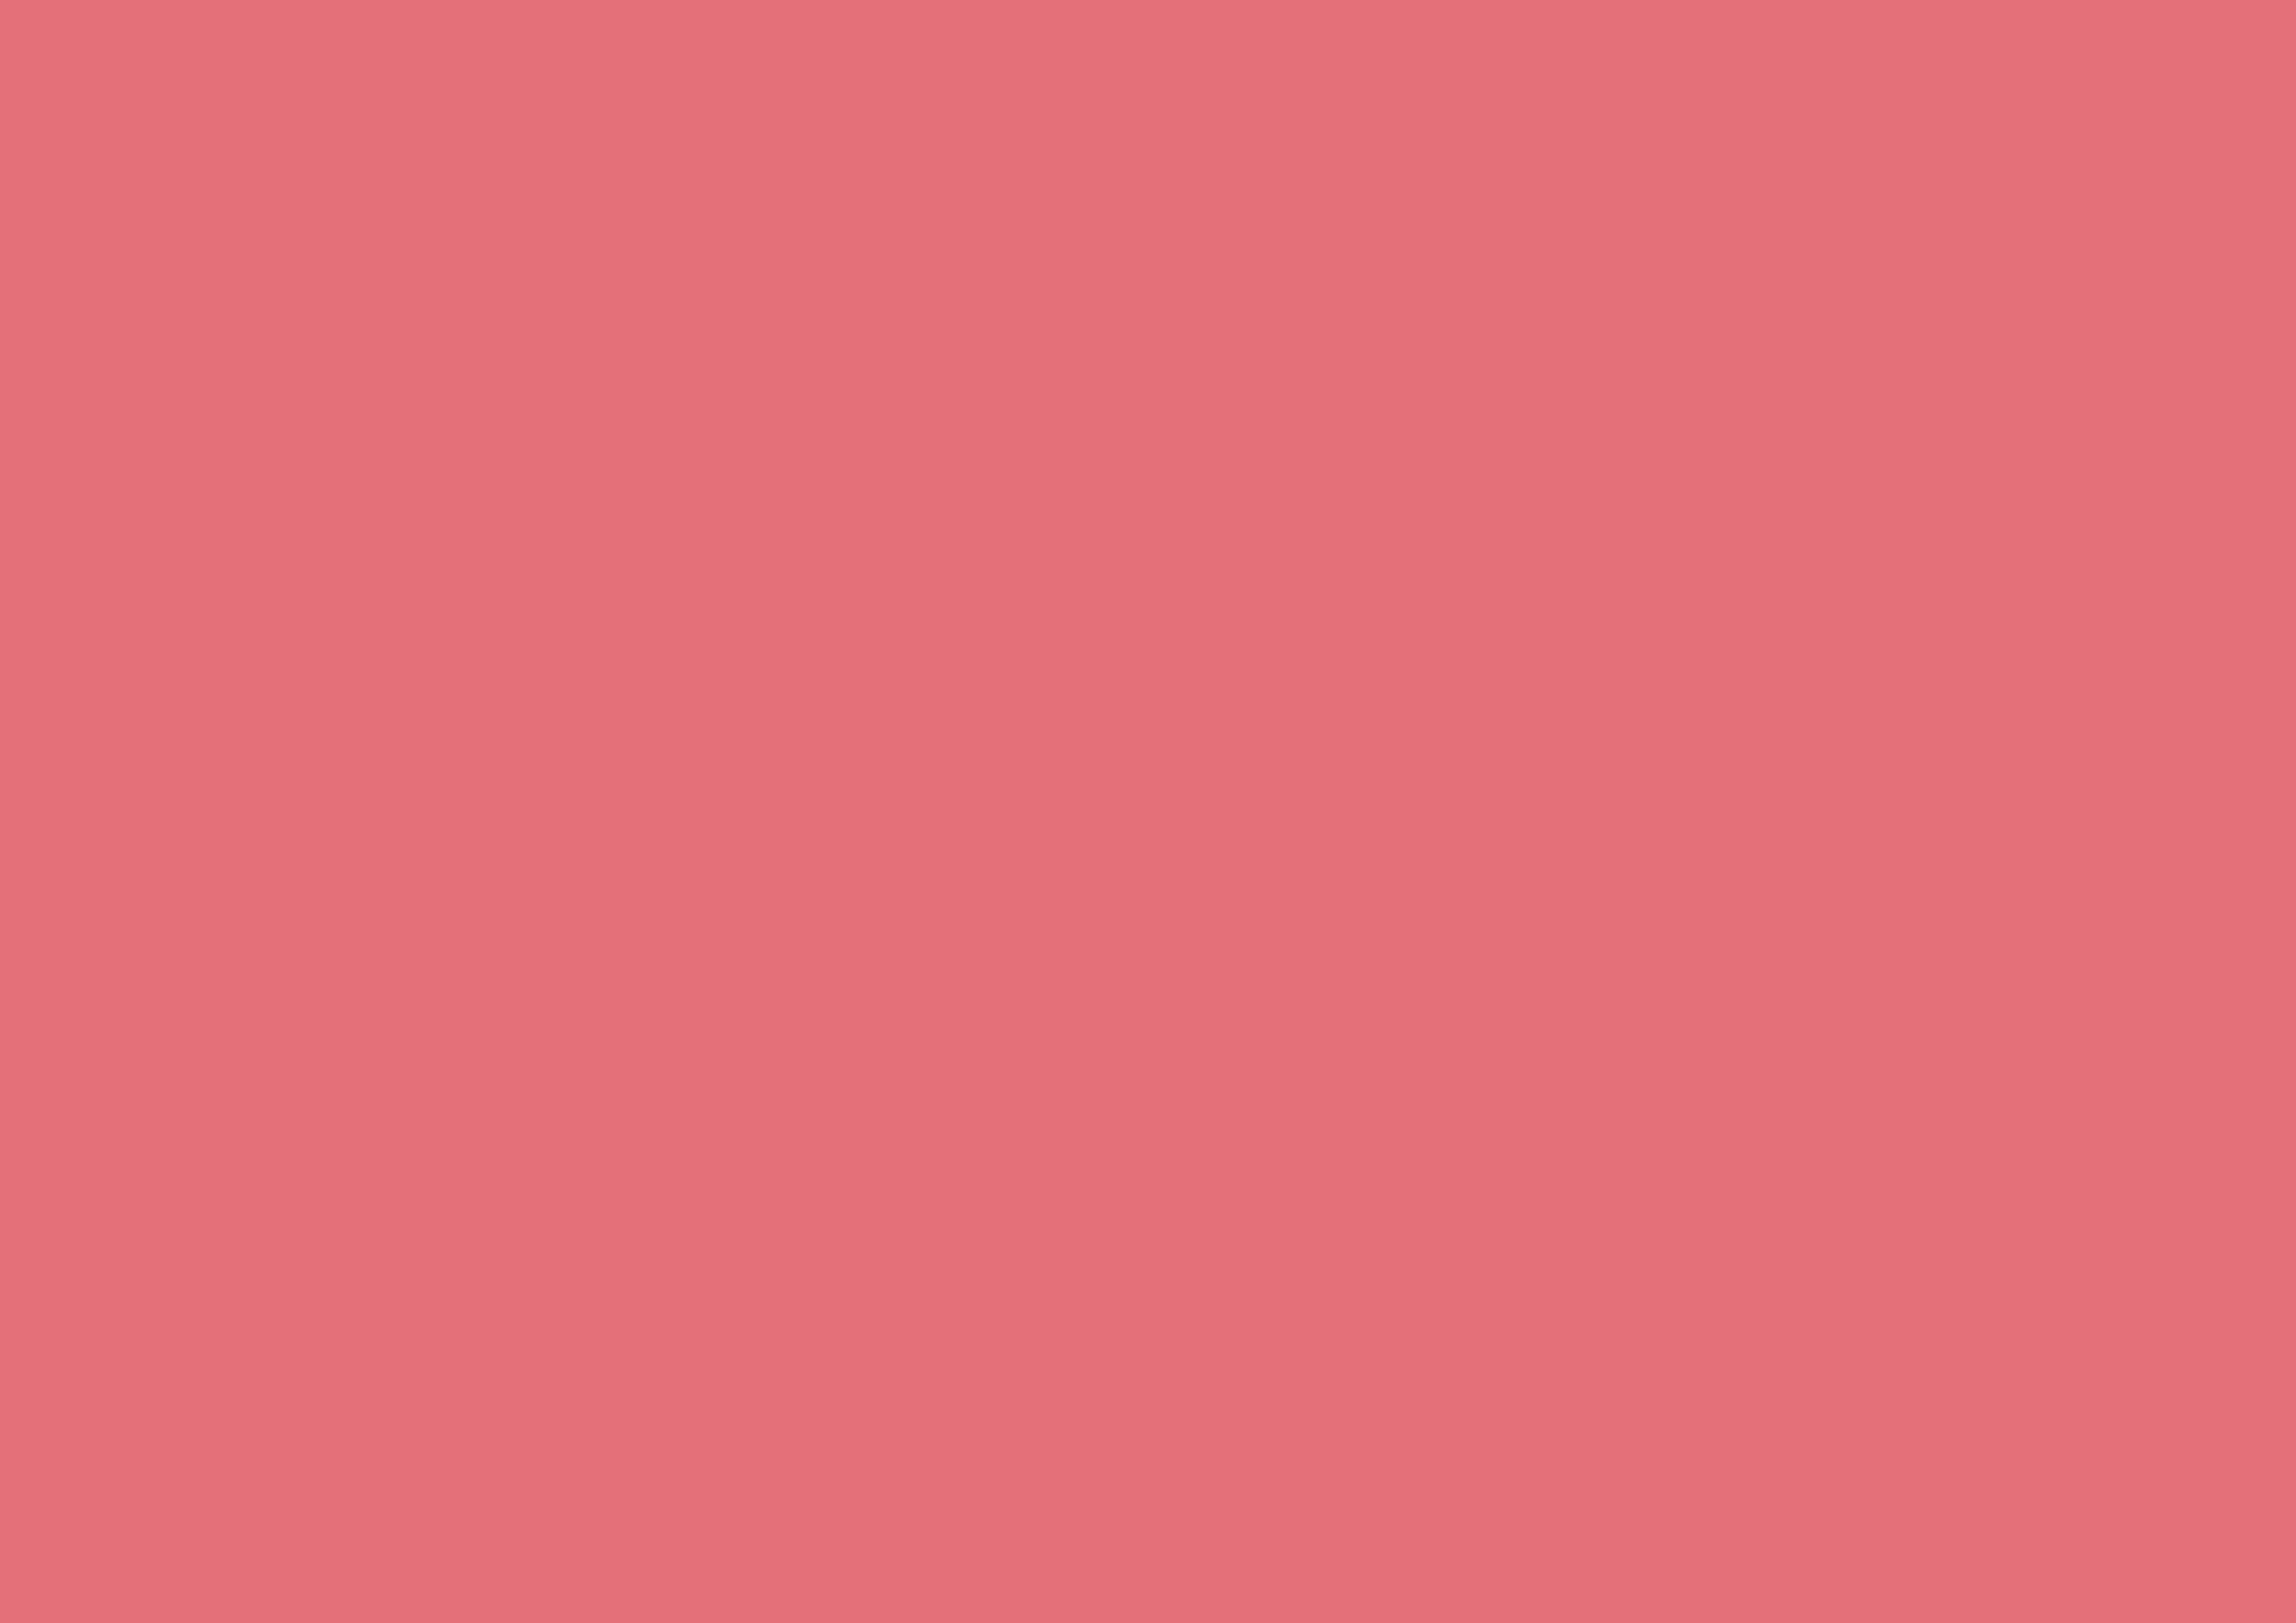 3508x2480 Tango Pink Solid Color Background